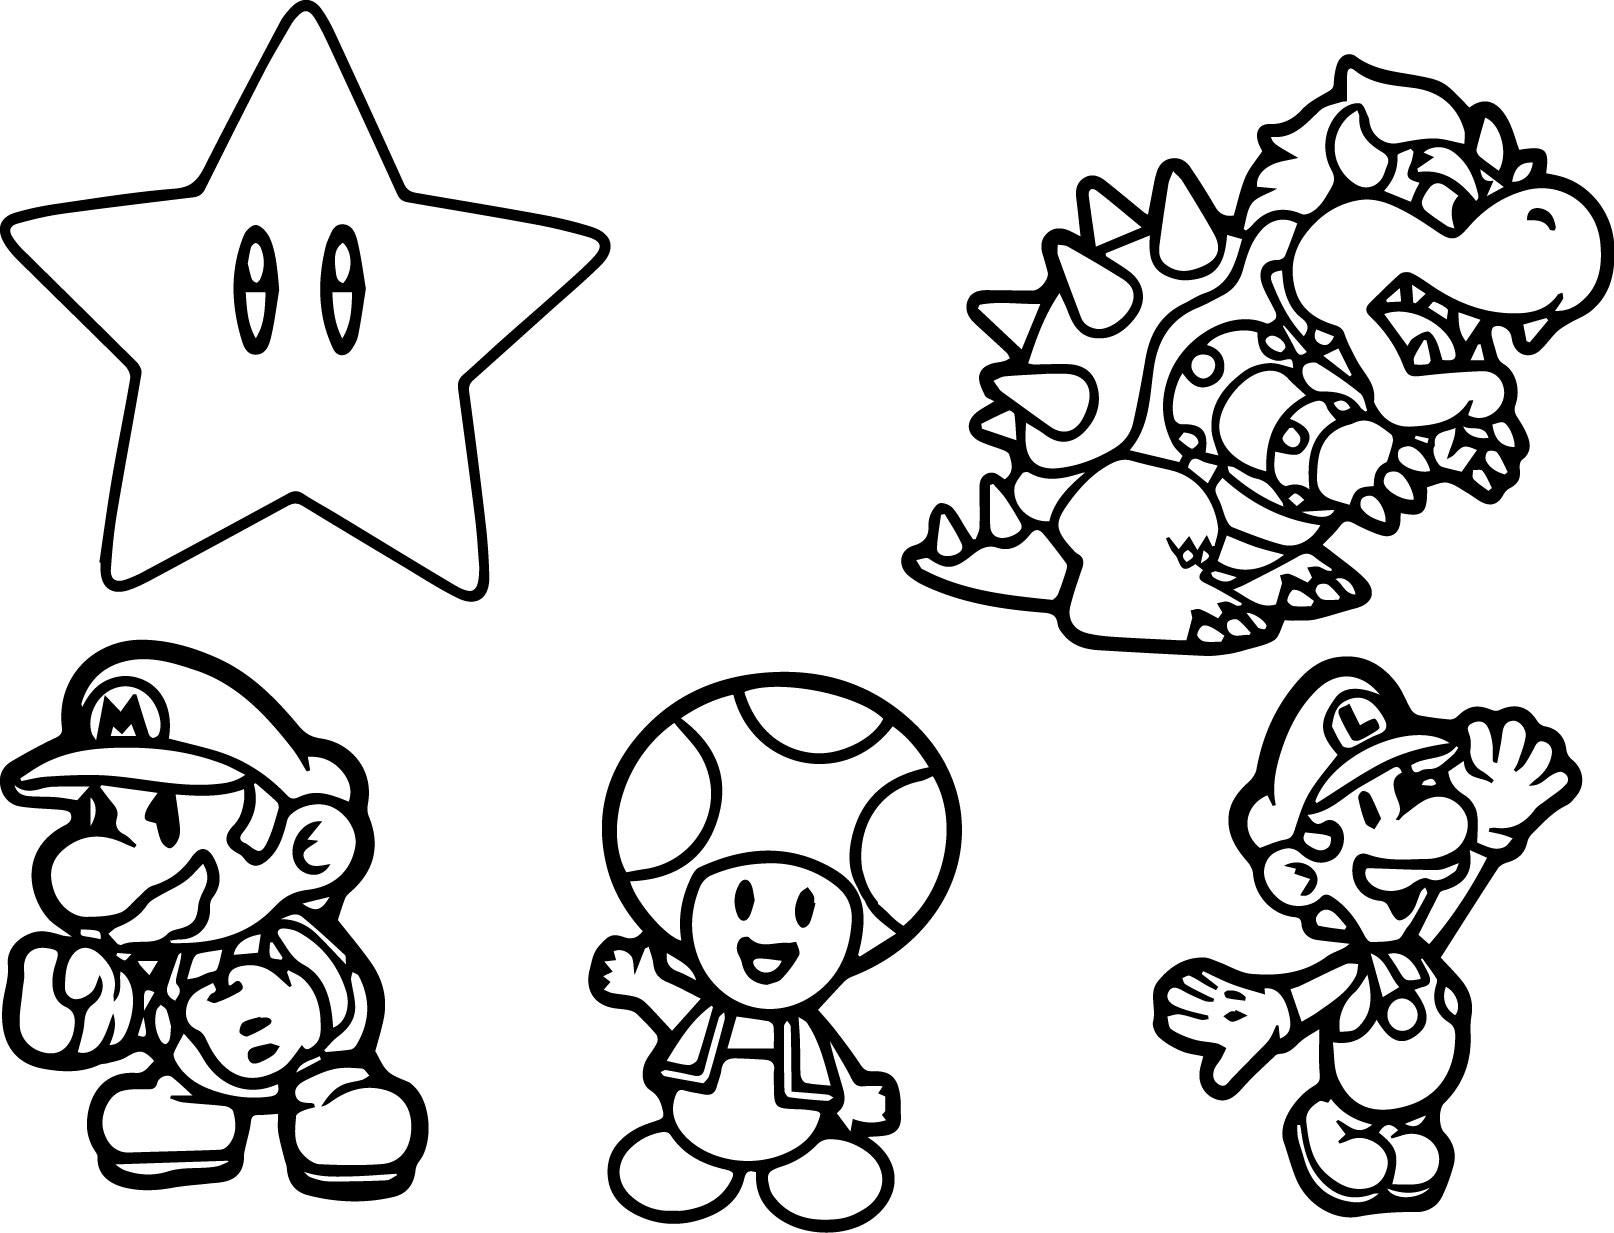 mario characters coloring pages super mario characters pages coloring pages mario characters pages coloring